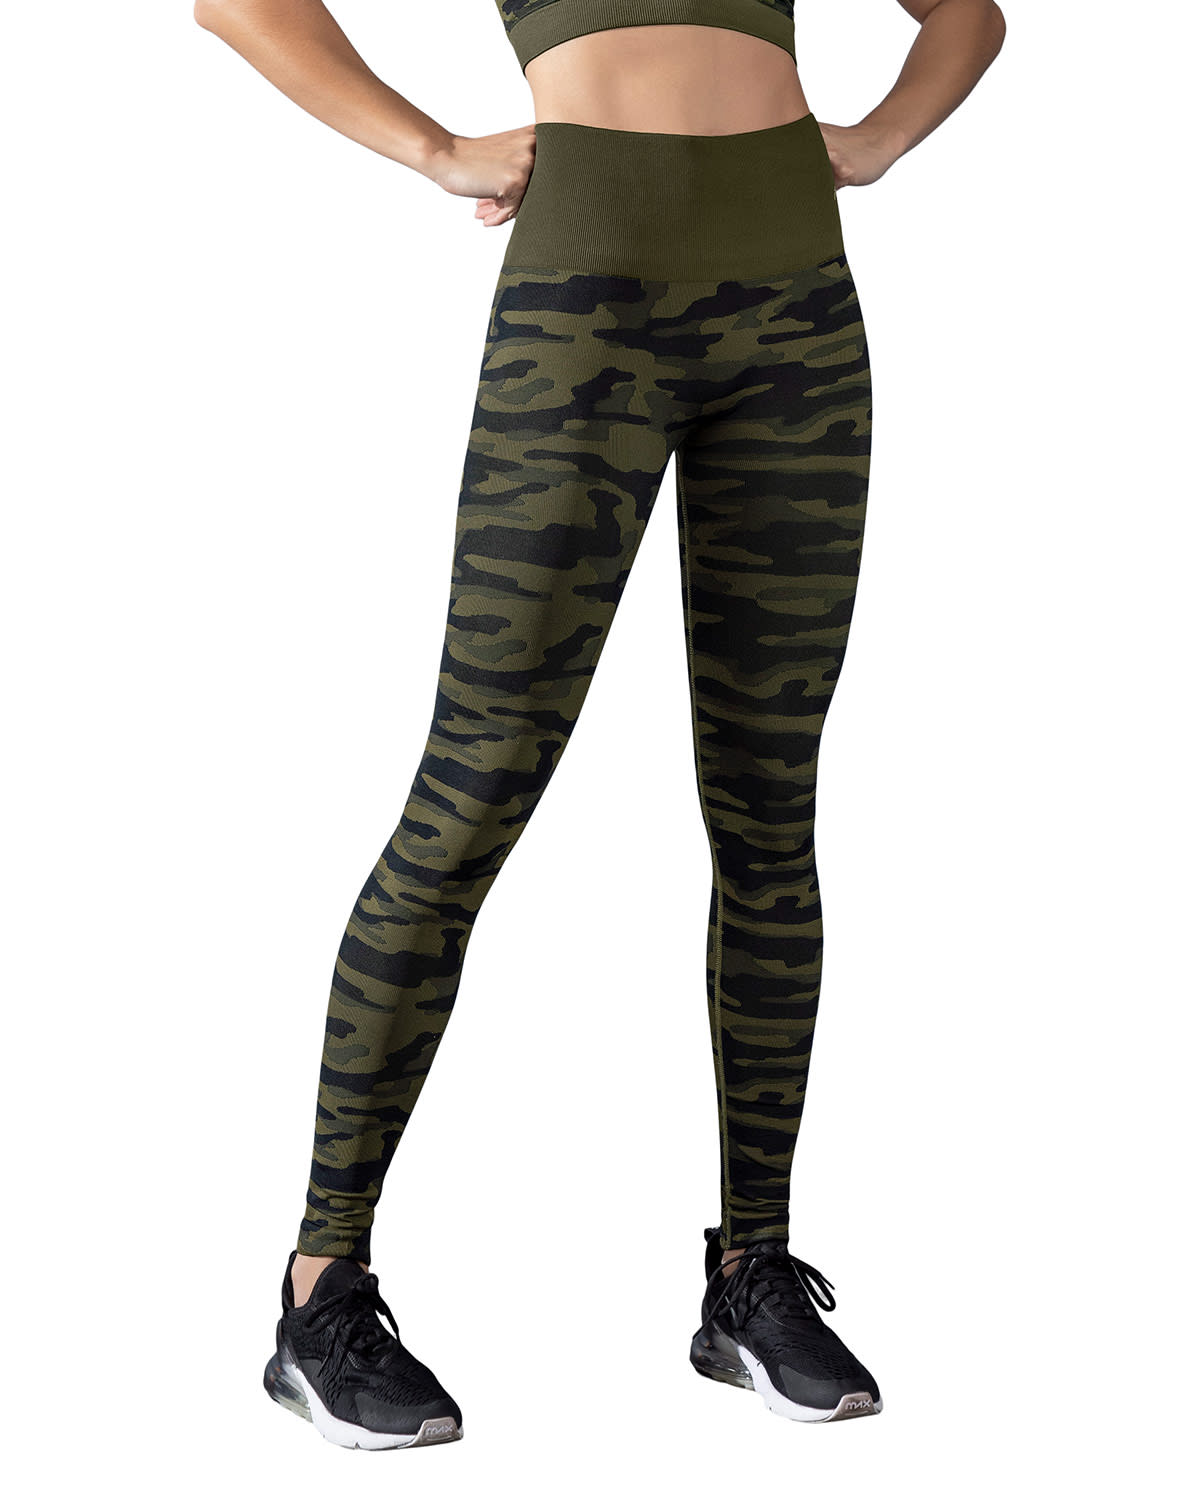 Smoothing High-Waisted Graphic Active Legging